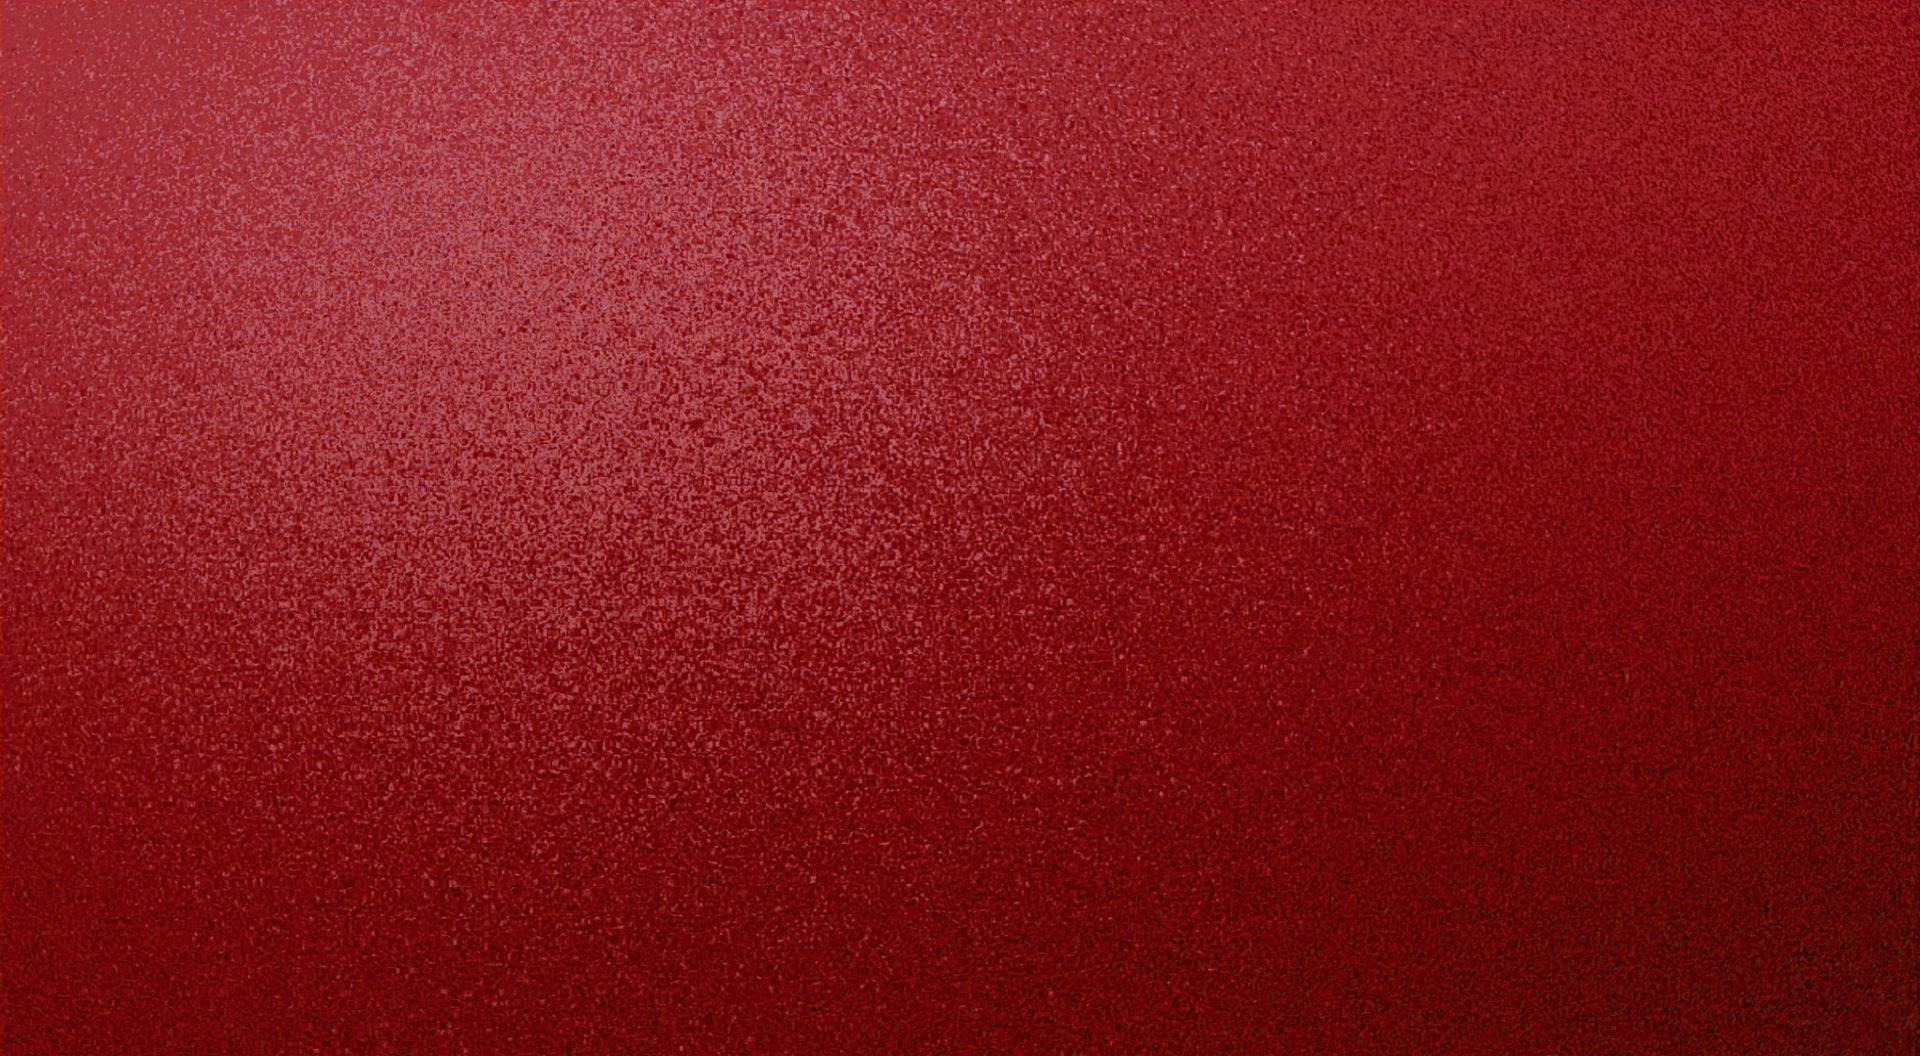 Textured Red Wallpapers - Wallpaper Cave